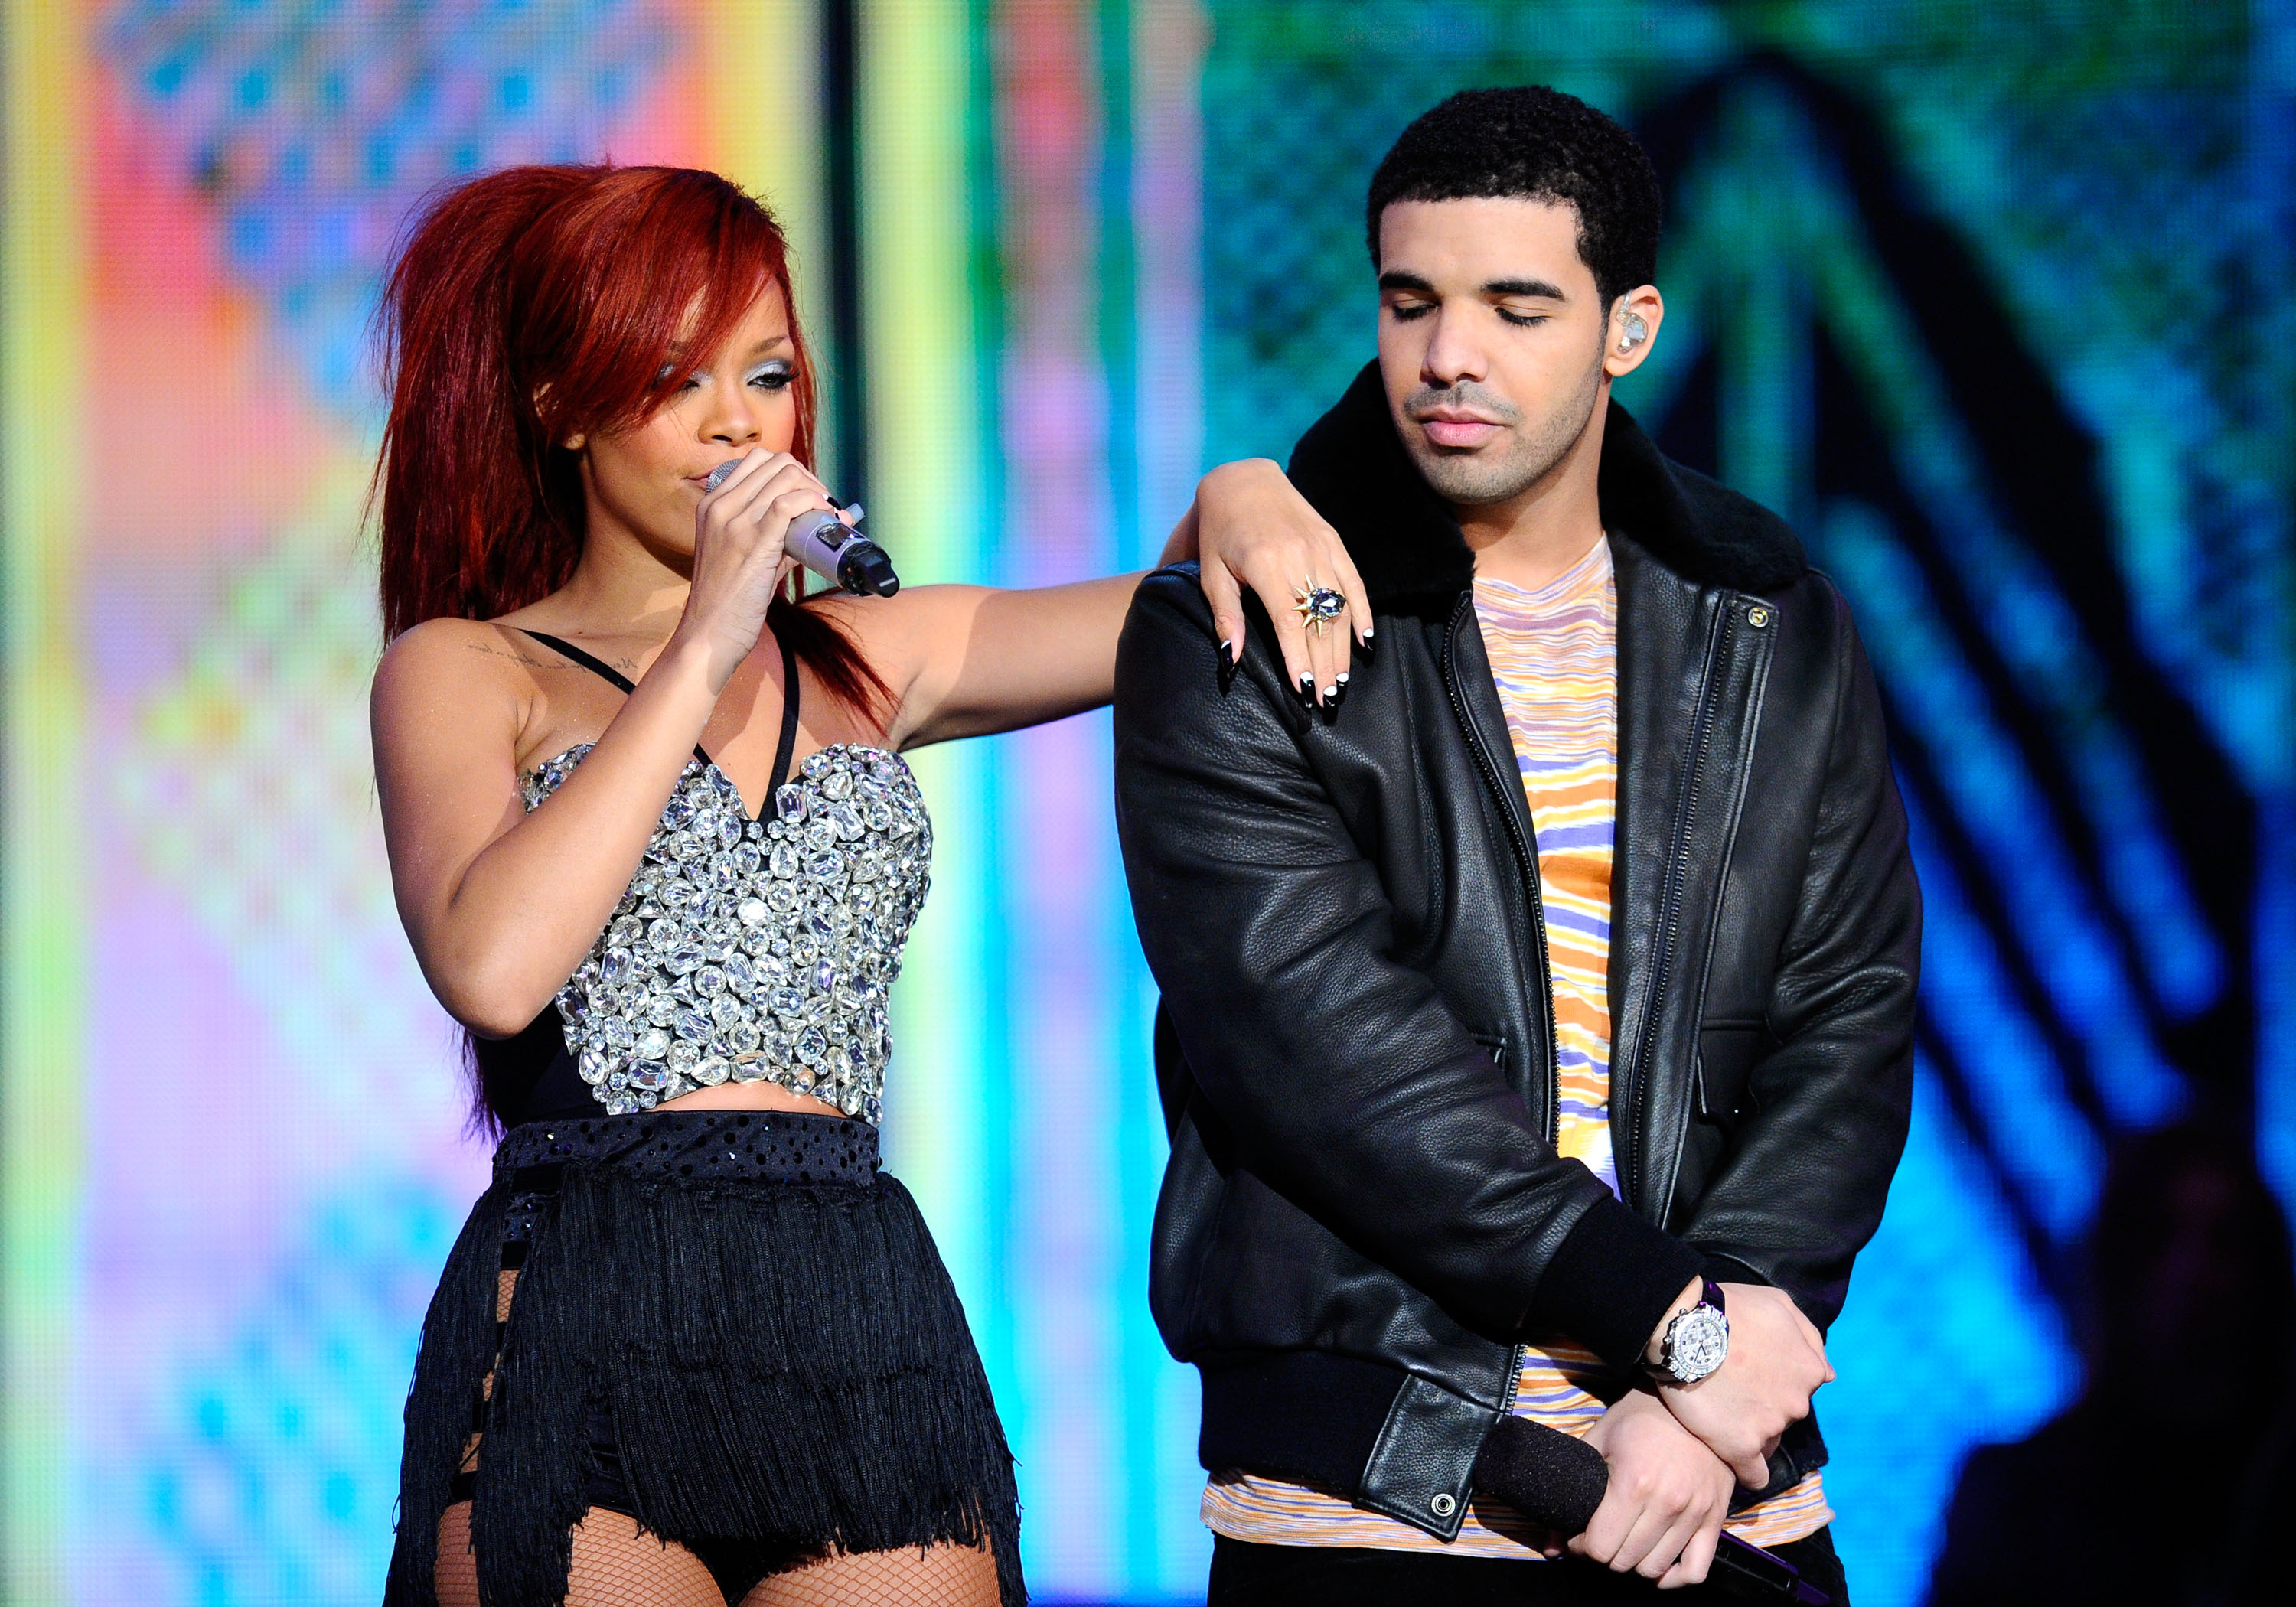 Drake graham dating rihanna